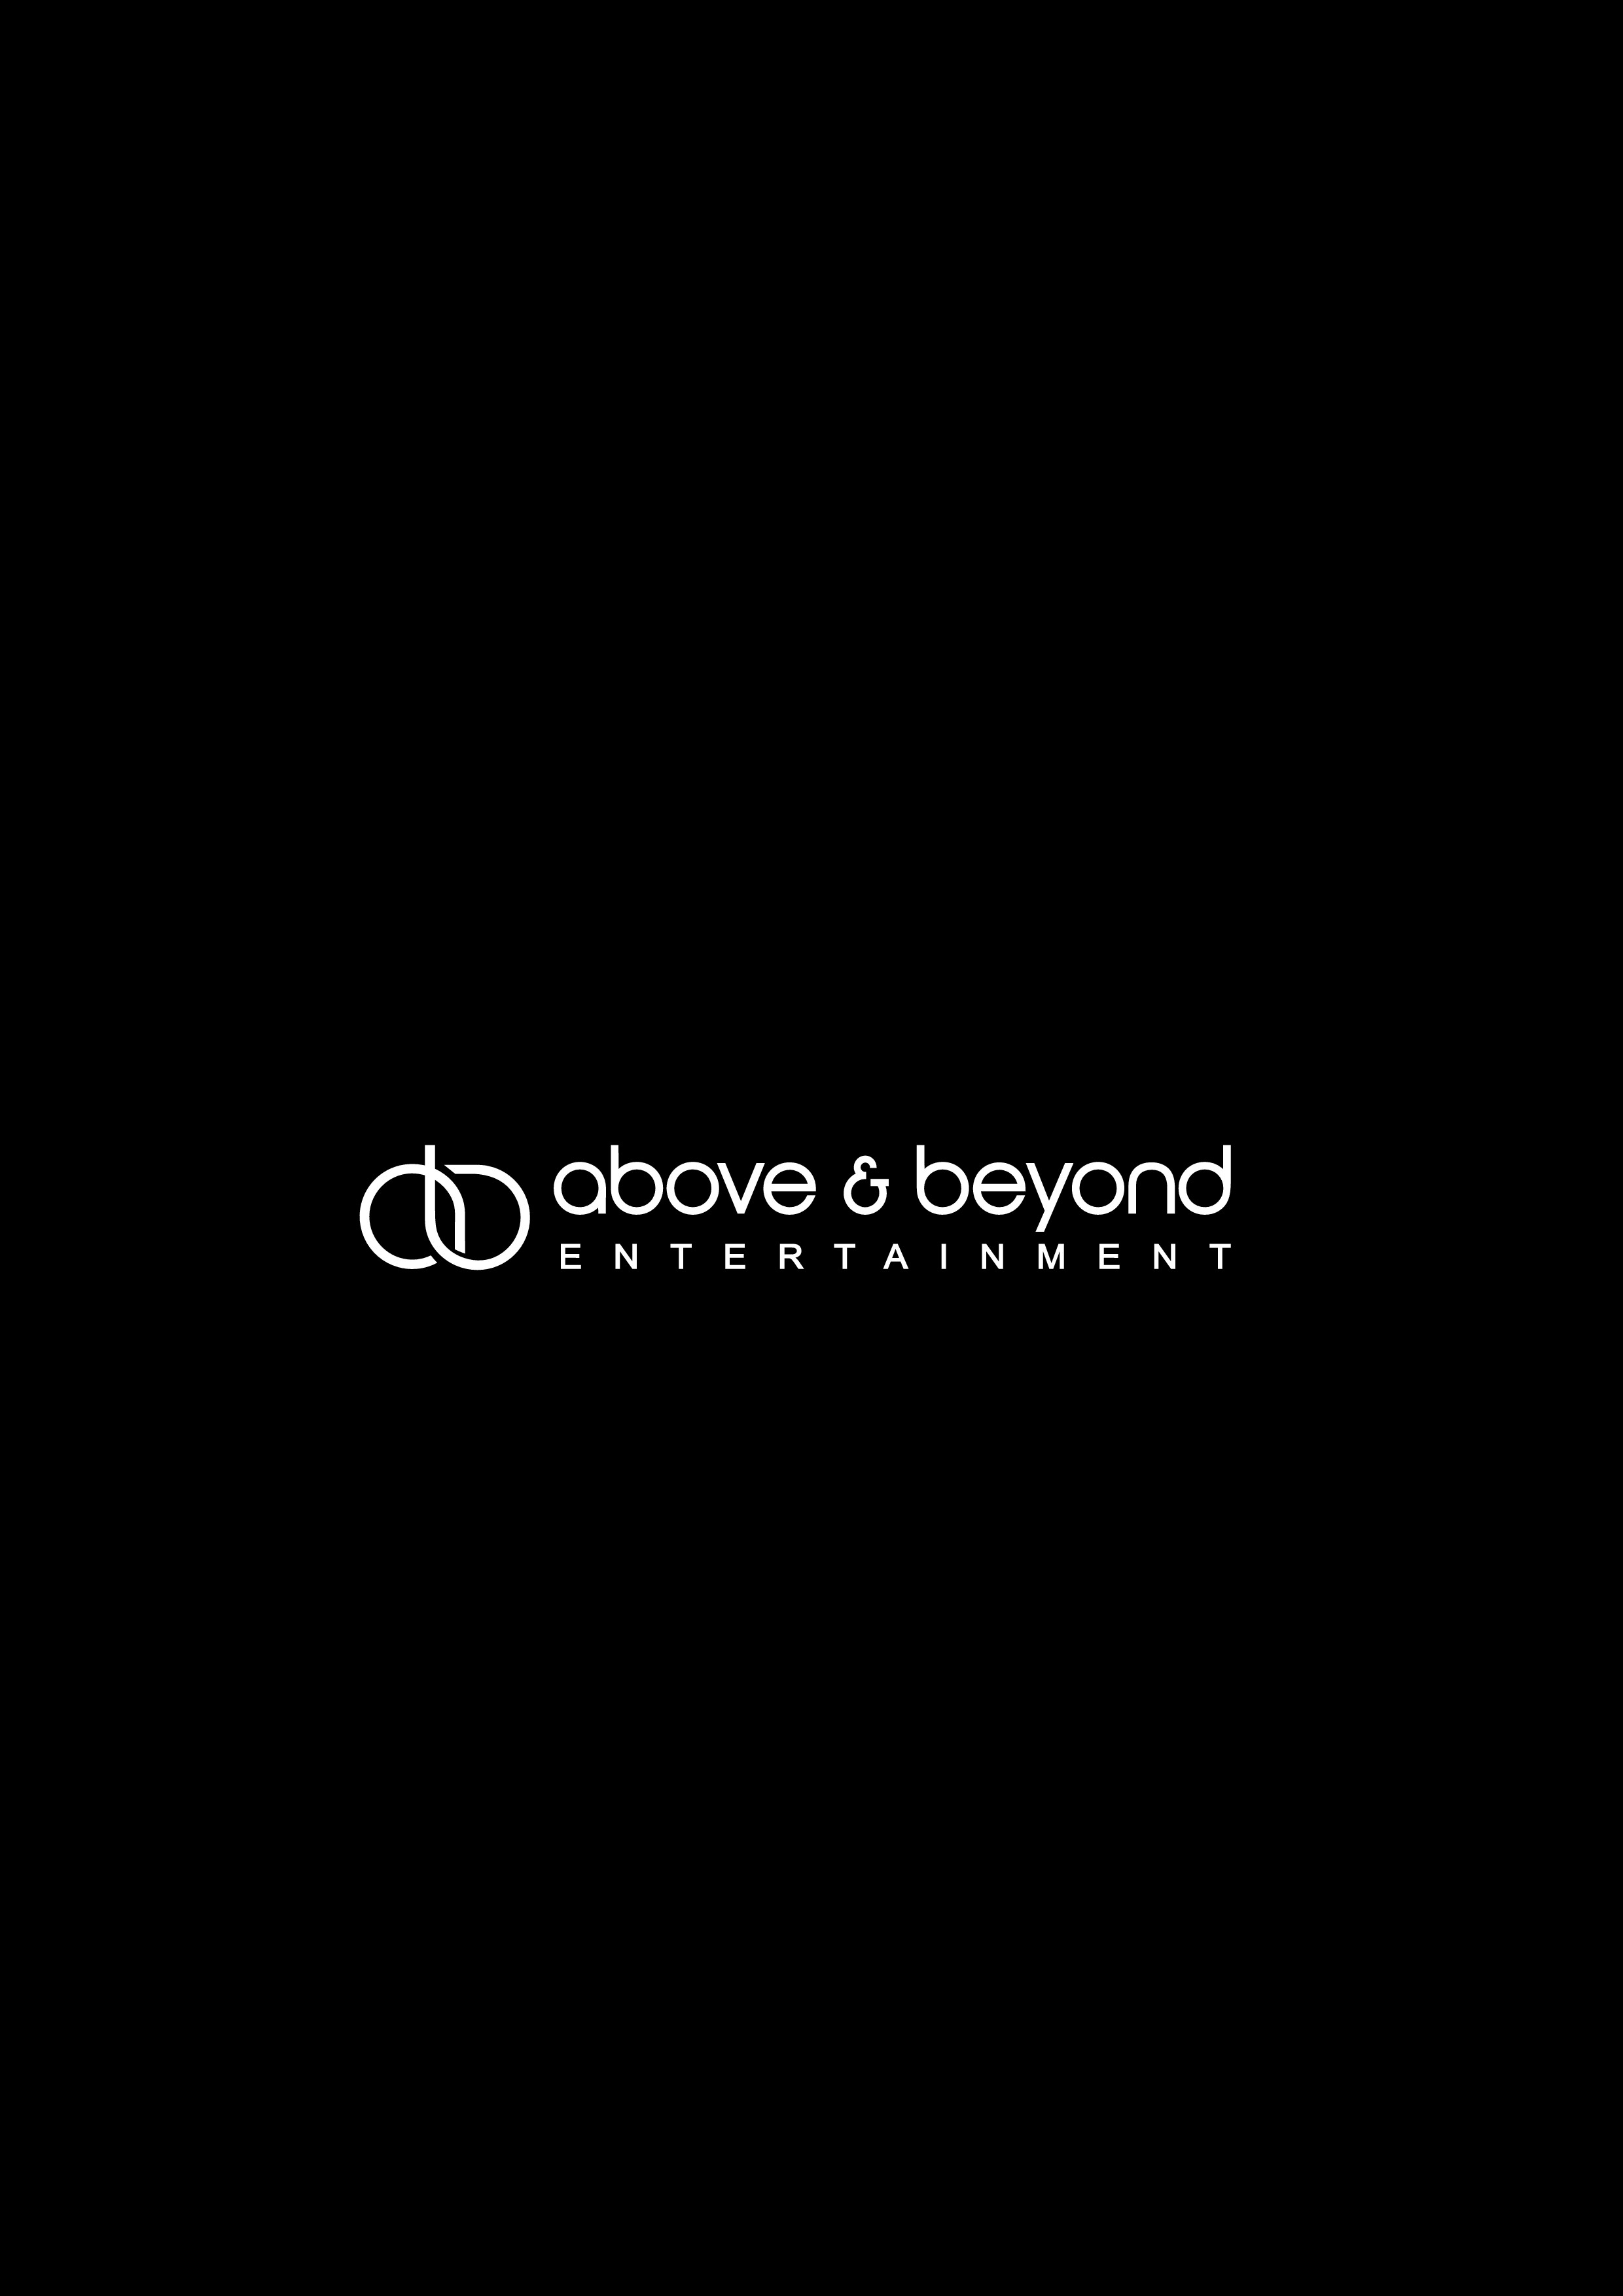 $$ Prize upgrade!!! Music lovers design a new logo for Above & Beyond Entertainment